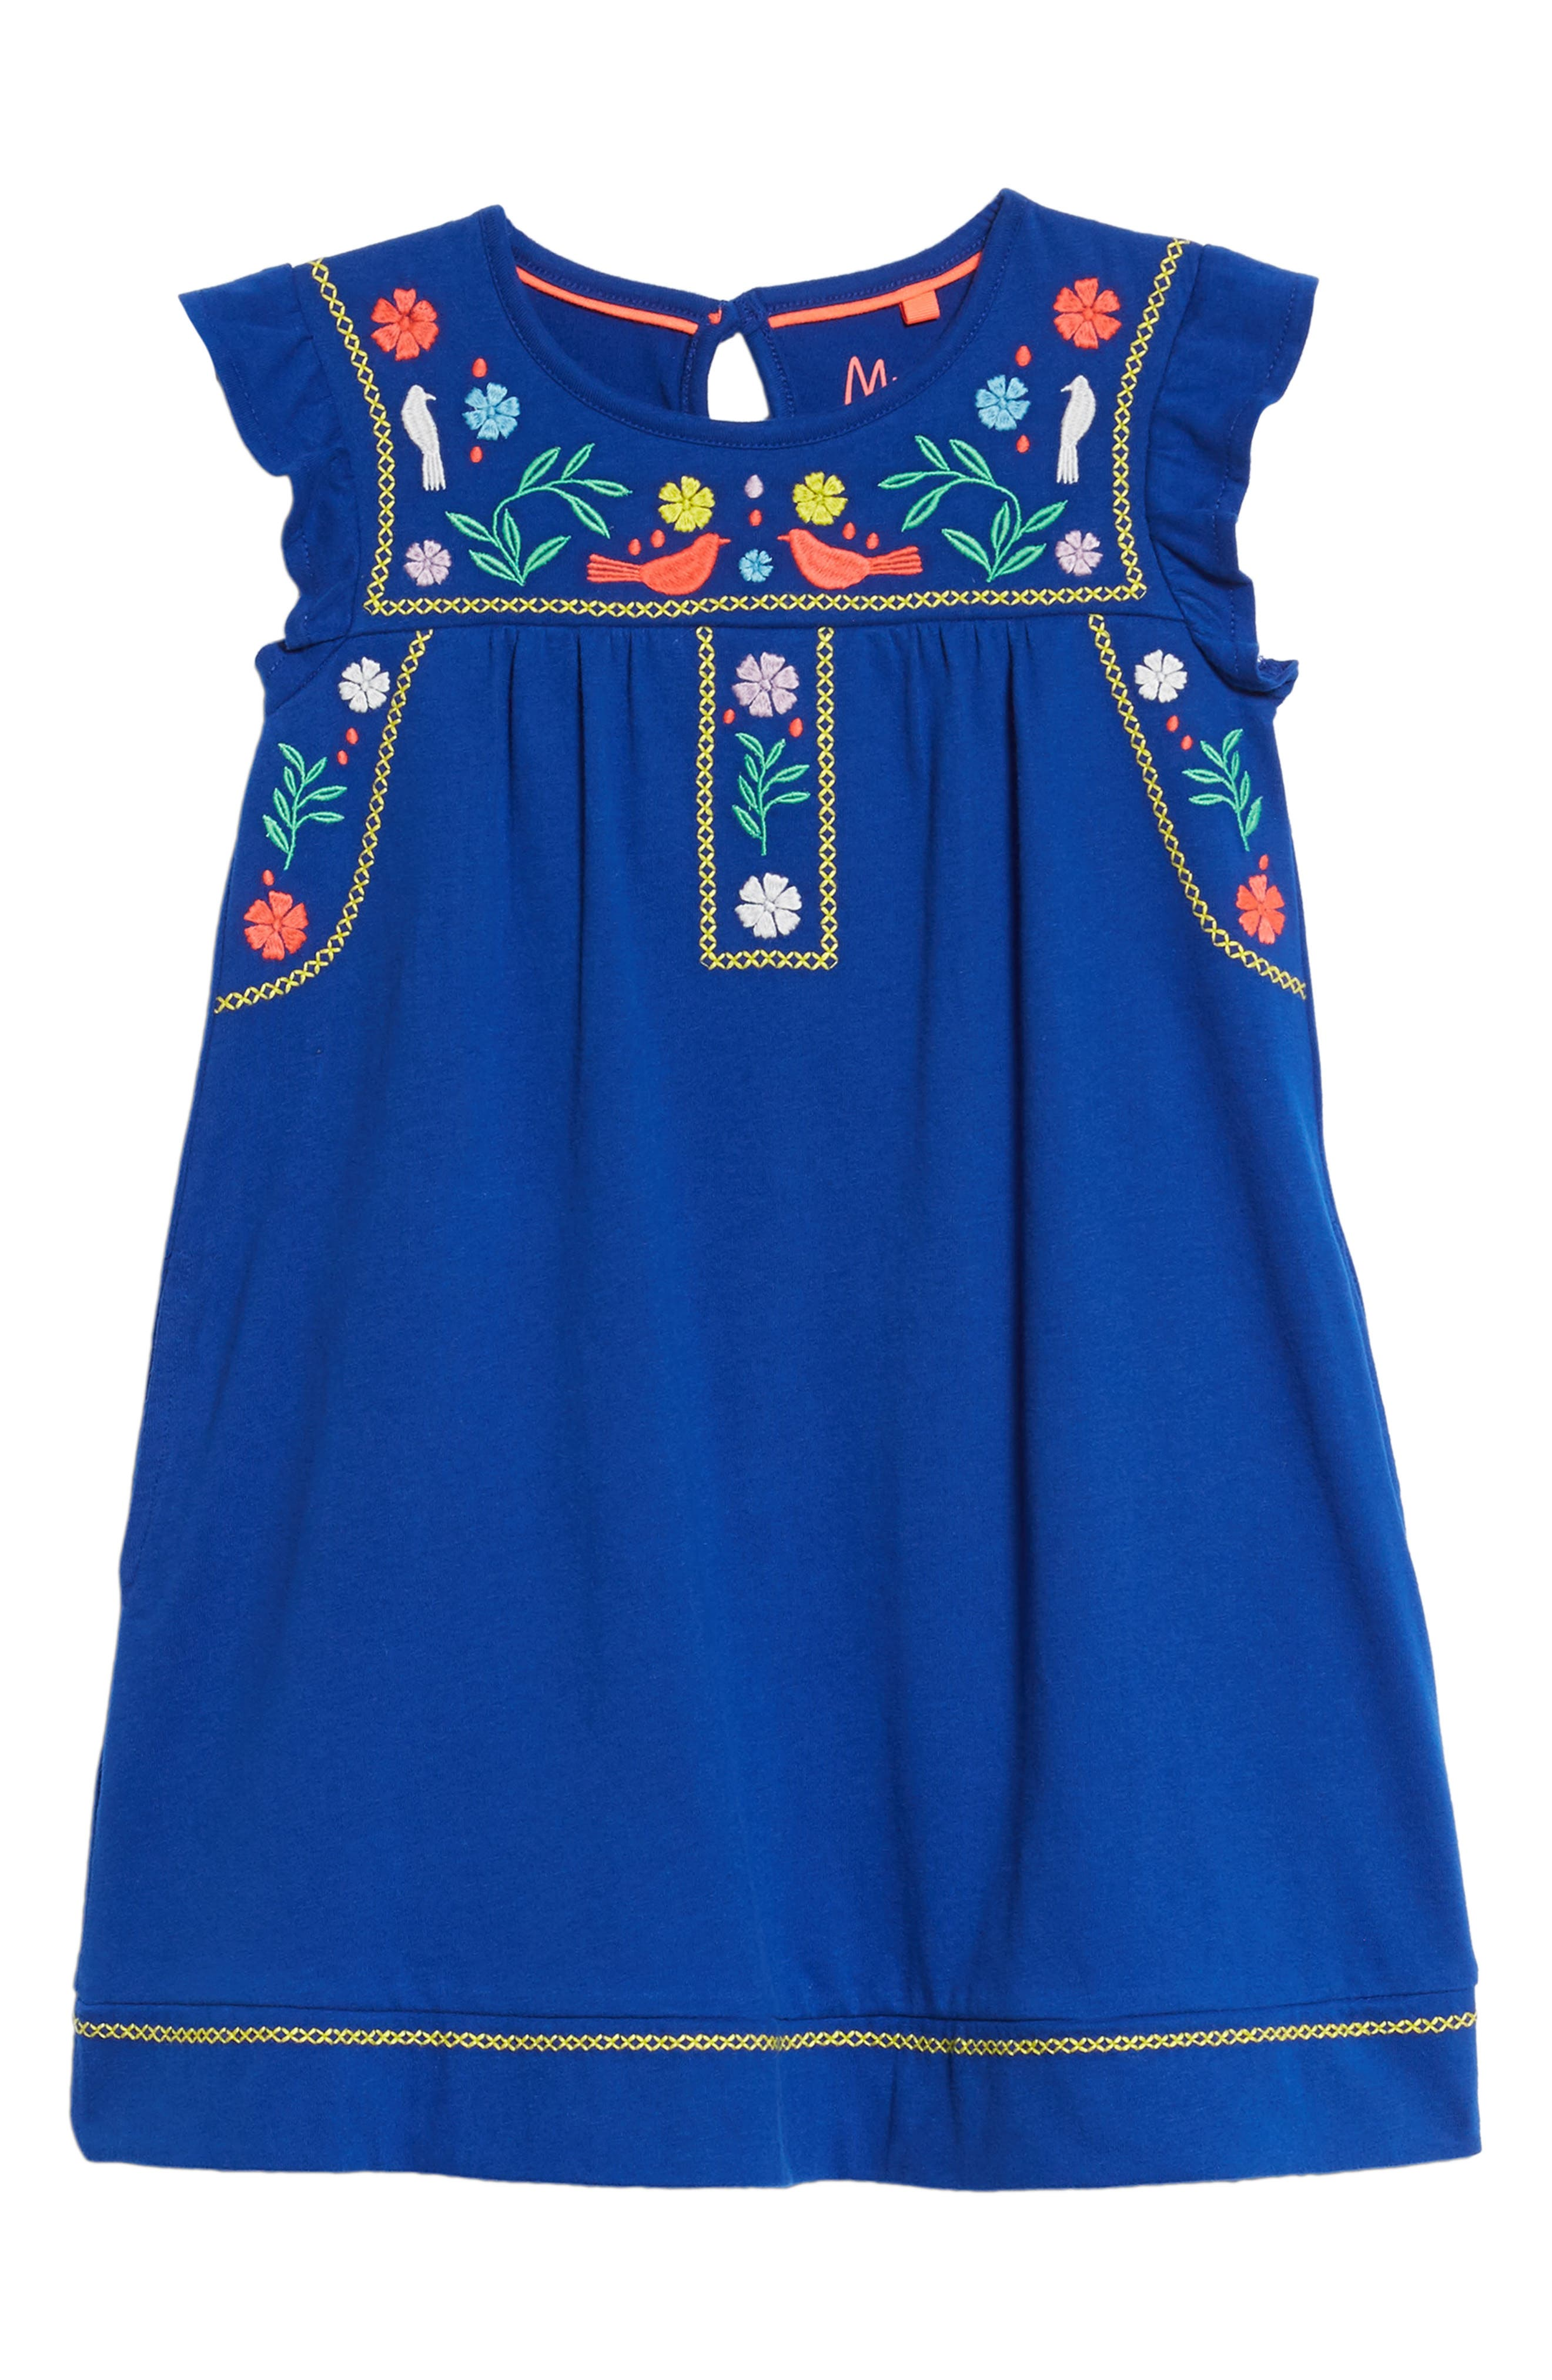 Embroidered Jersey Dress,                             Main thumbnail 1, color,                             Orion Blue